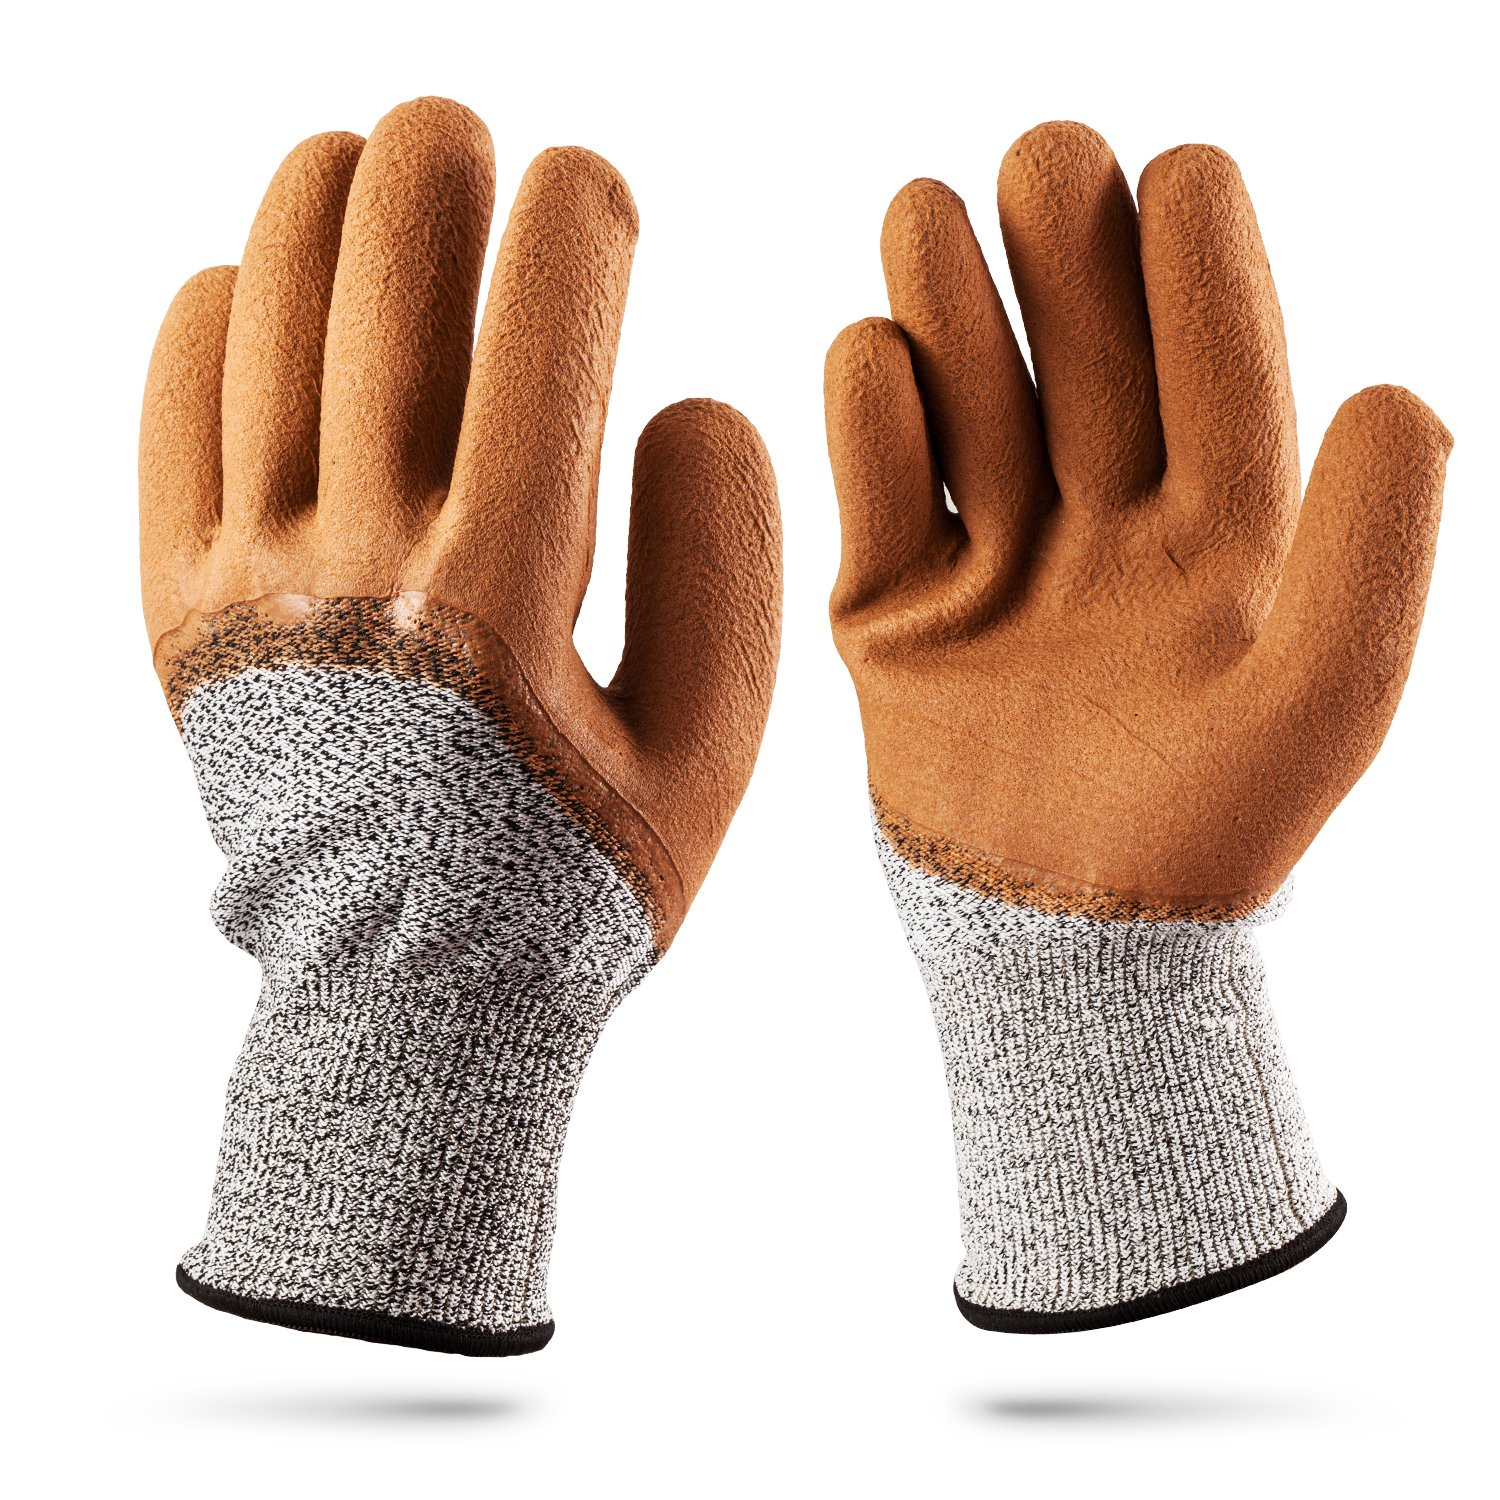 Cut Stab Cut Resistant Gloves,TFboys 2 Pack Gloves Resistant Level 5 Working Protective Gloves Anti Abrasion for Safety